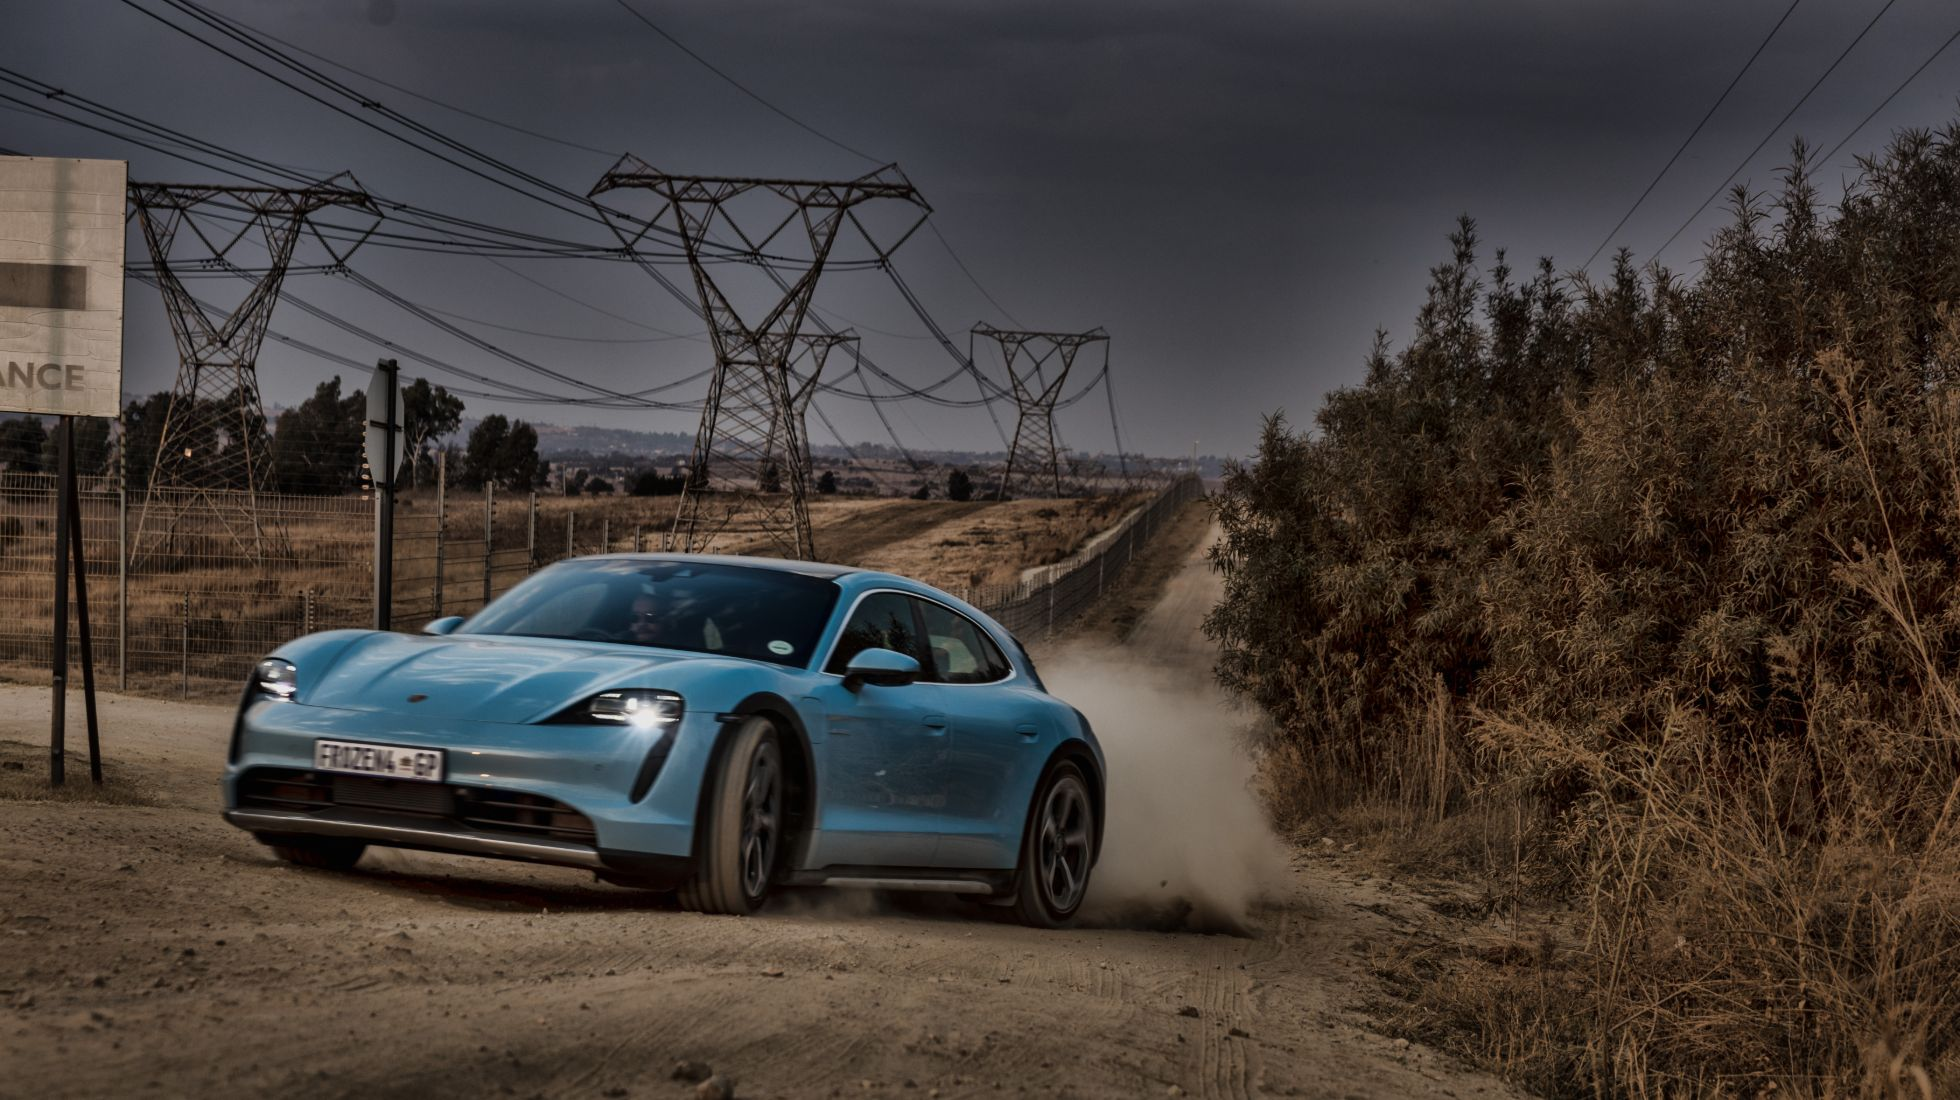 Electric. Eclectic. Estate. We review a Frozen Baby Blue Porsche Taycan 4S Cross Turismo